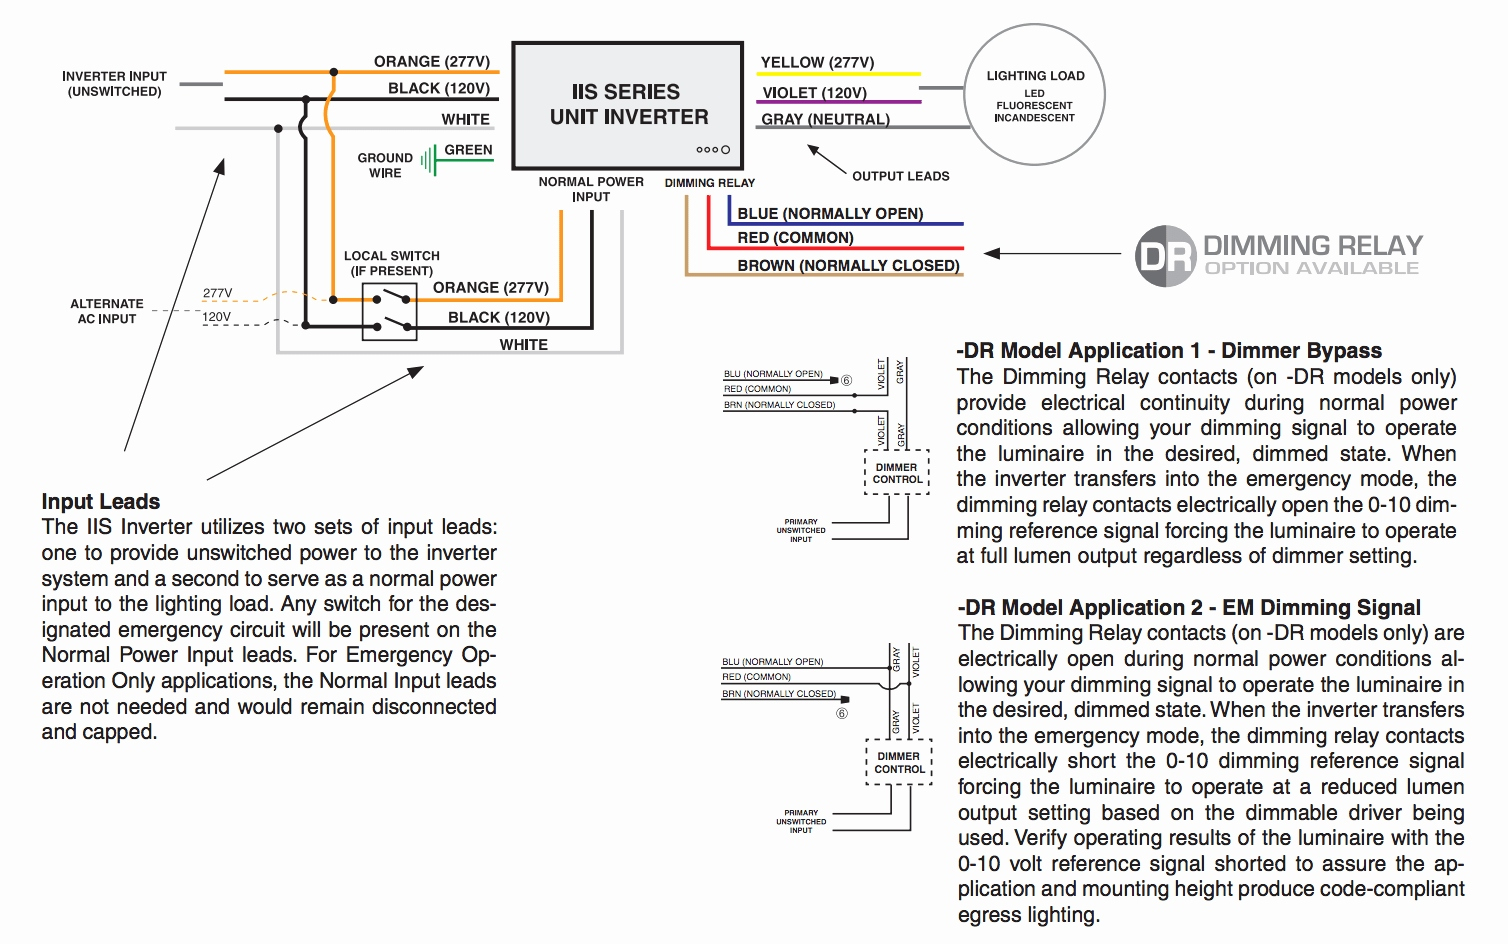 iota emergency ballast wiring diagram Download-Full Size of Wiring Diagram Philips Advance Ballast Wiring Diagram Elegant Exelent T5 Ballast Wiring 1-k